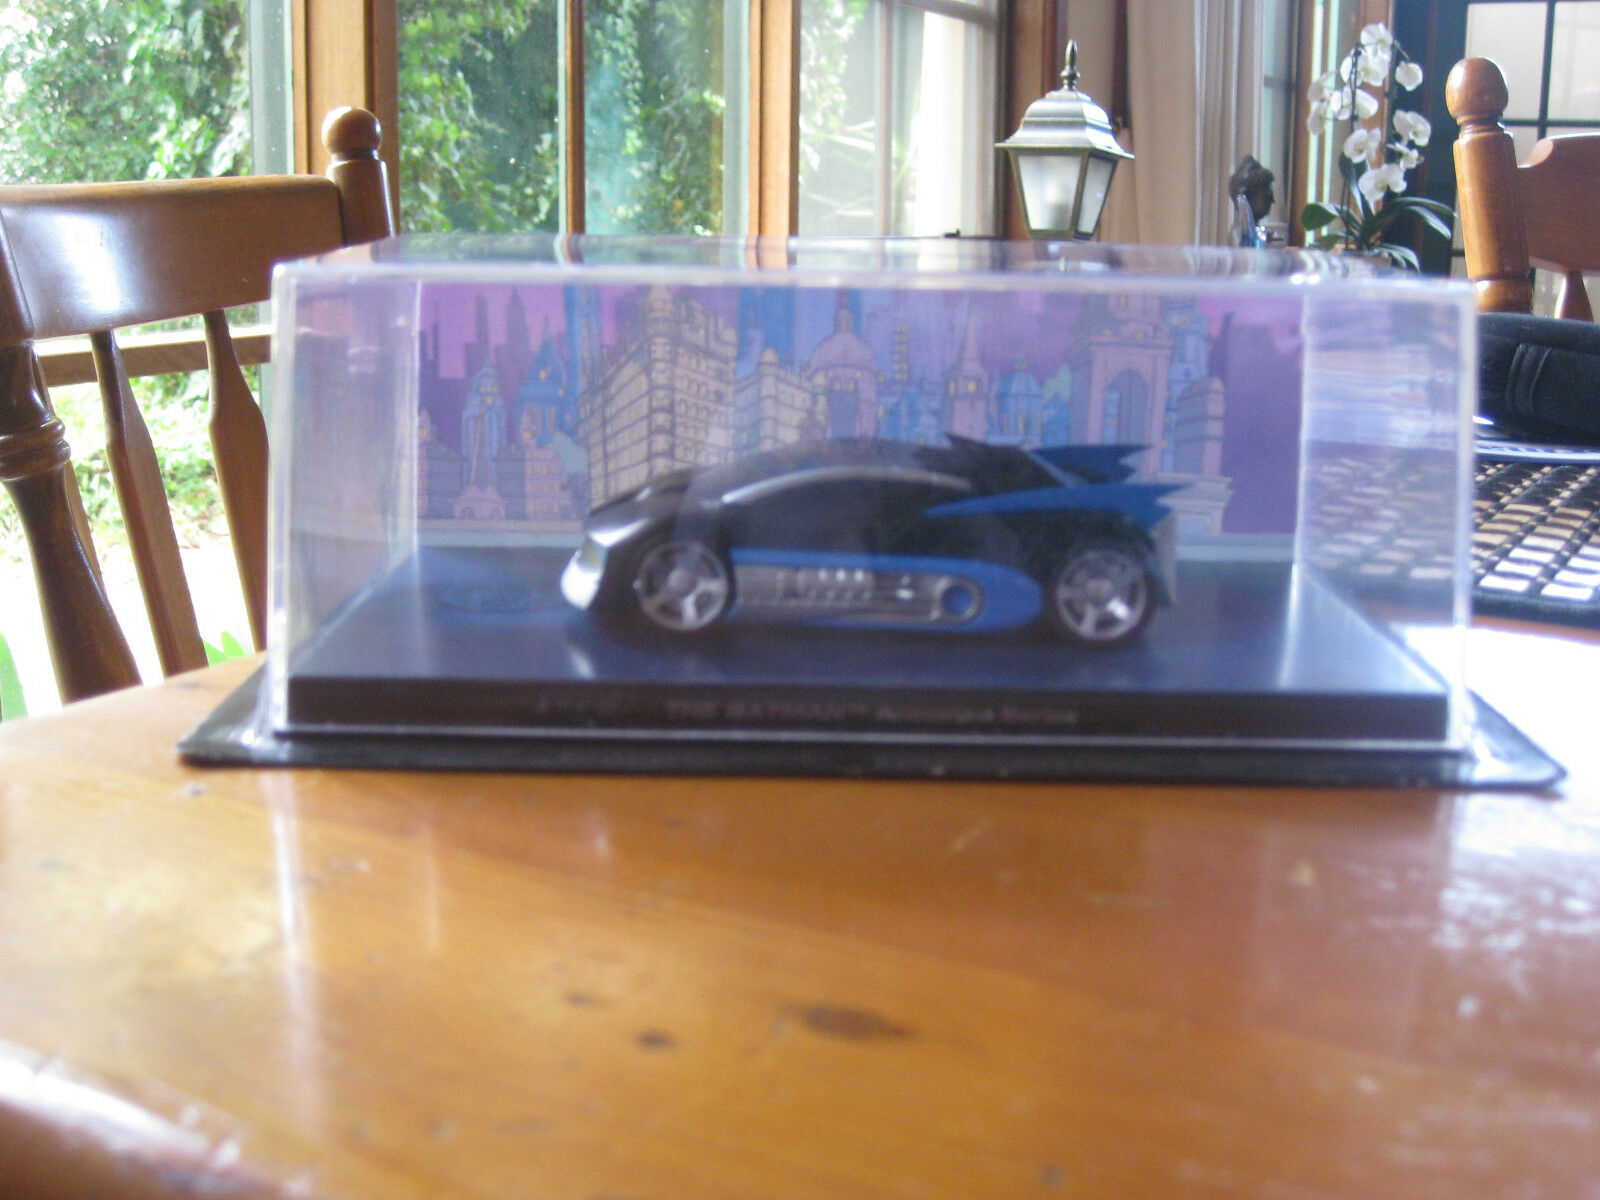 Batman - The Animated Series Toy Car - Rare Mint in Box, New